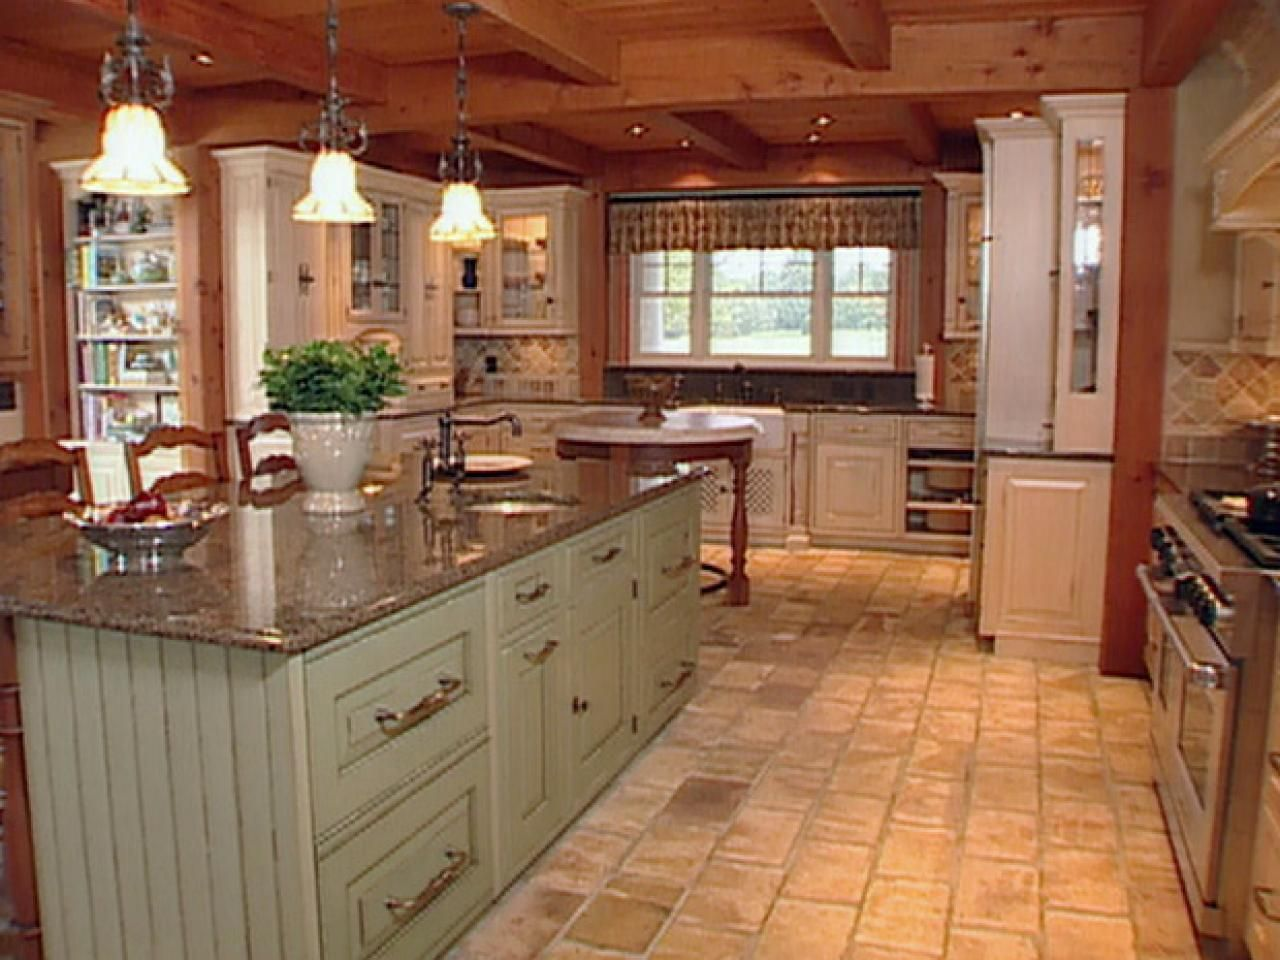 Farmhouse kitchen kitchen design decorating ideas housetohome co - Natural Materials Create Farmhouse Kitchen Design